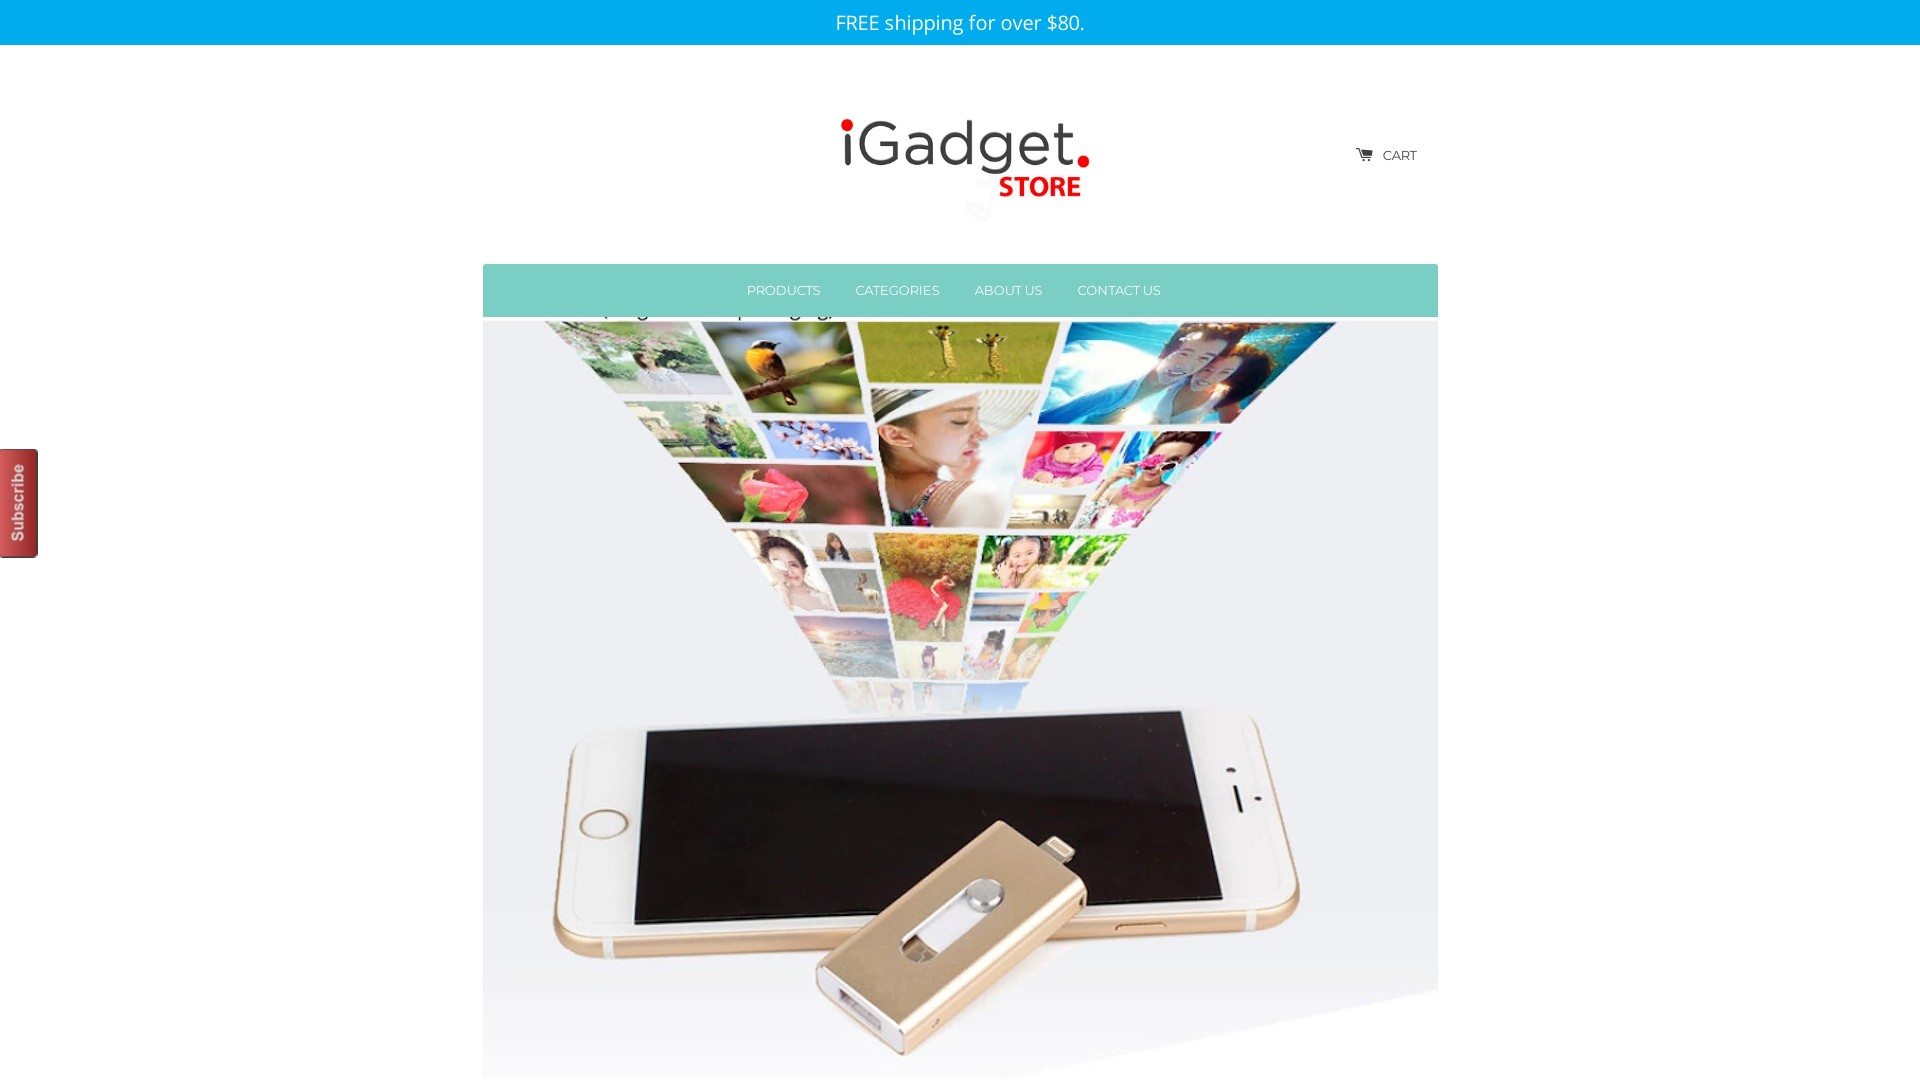 Is igadget Store a Scam? Review of the Online Store